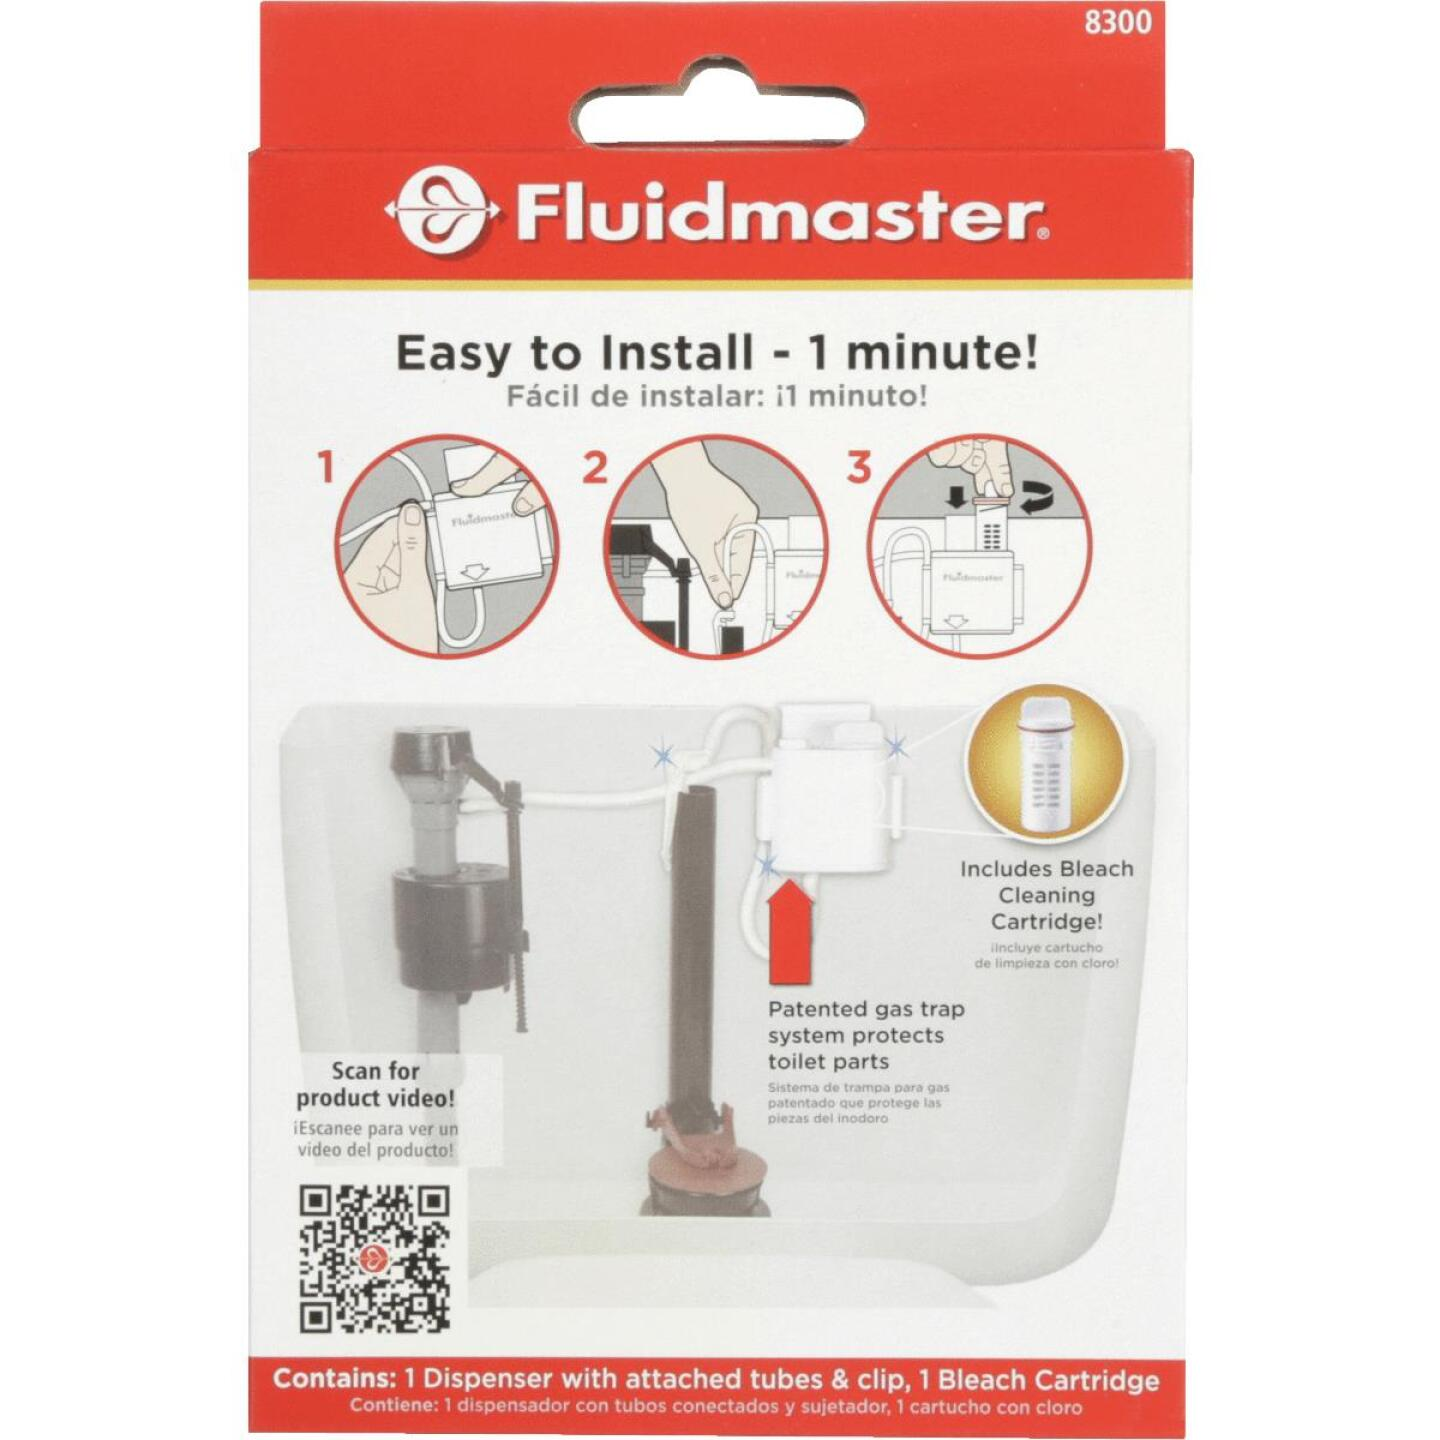 Fluidmaster Flush 'n Sparkle Automatic Toilet Bowl Cleaning System with Bleach Image 2